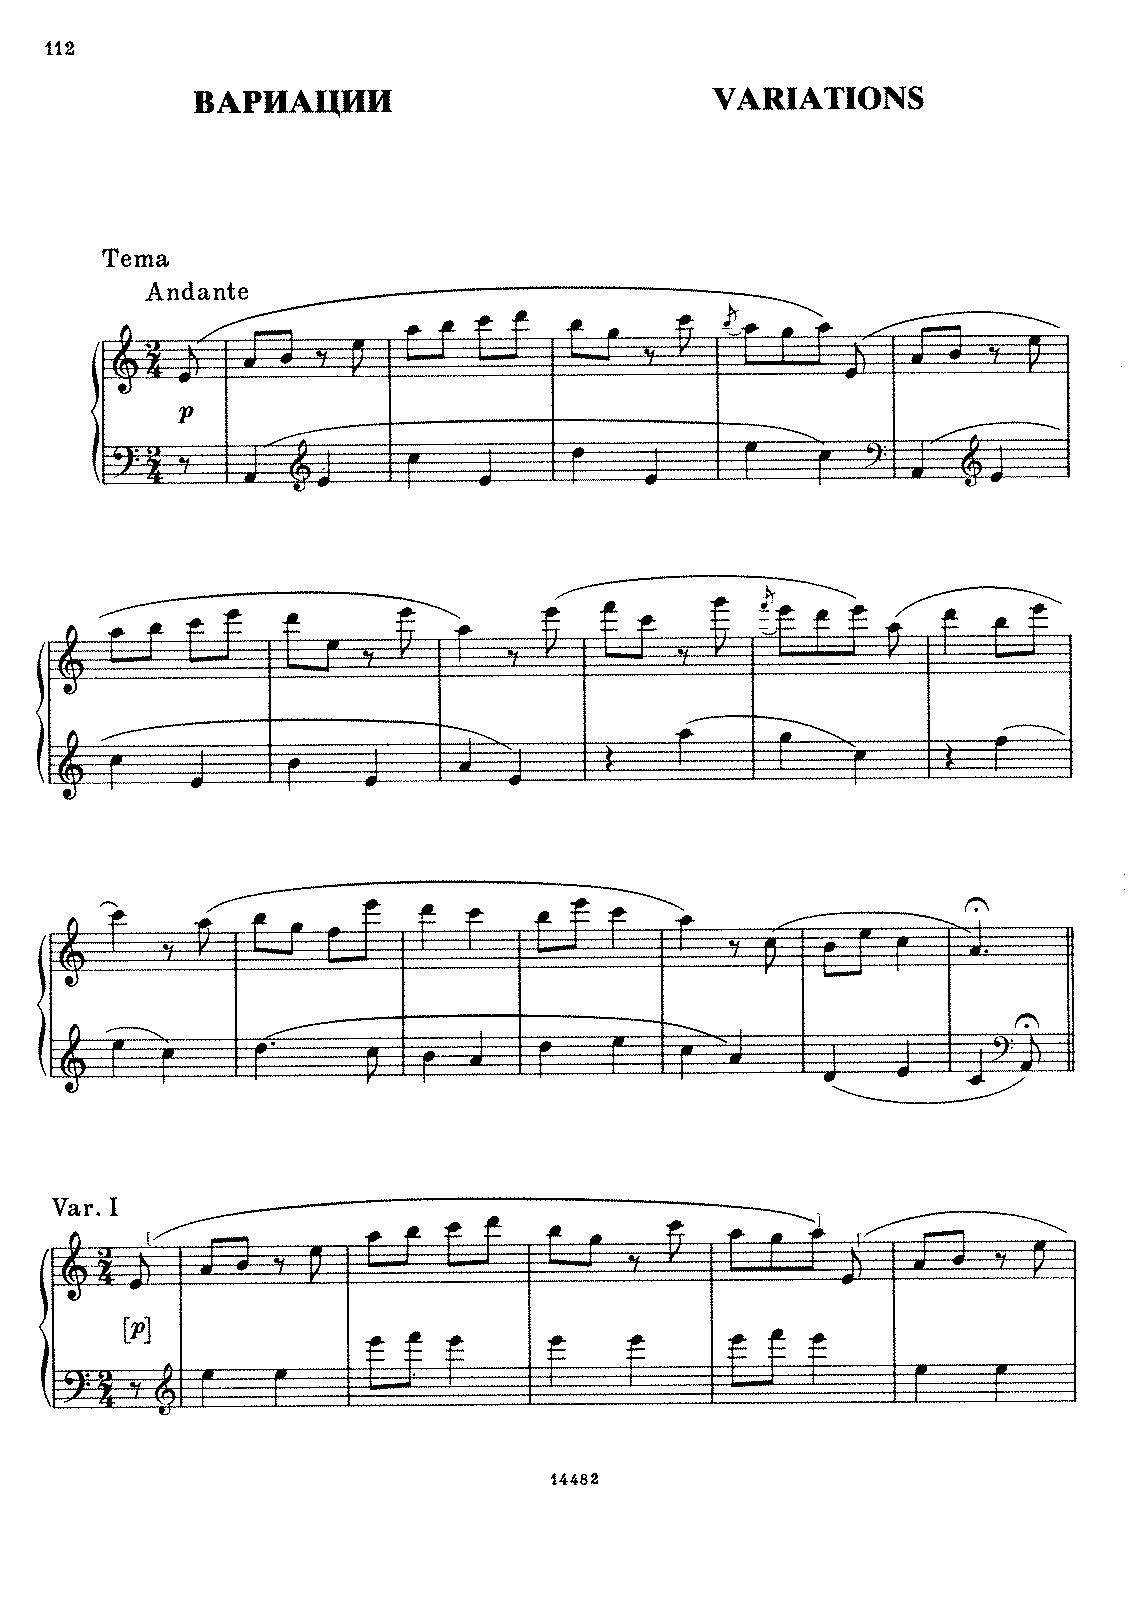 PMLP36411-Variations in A minor.pdf